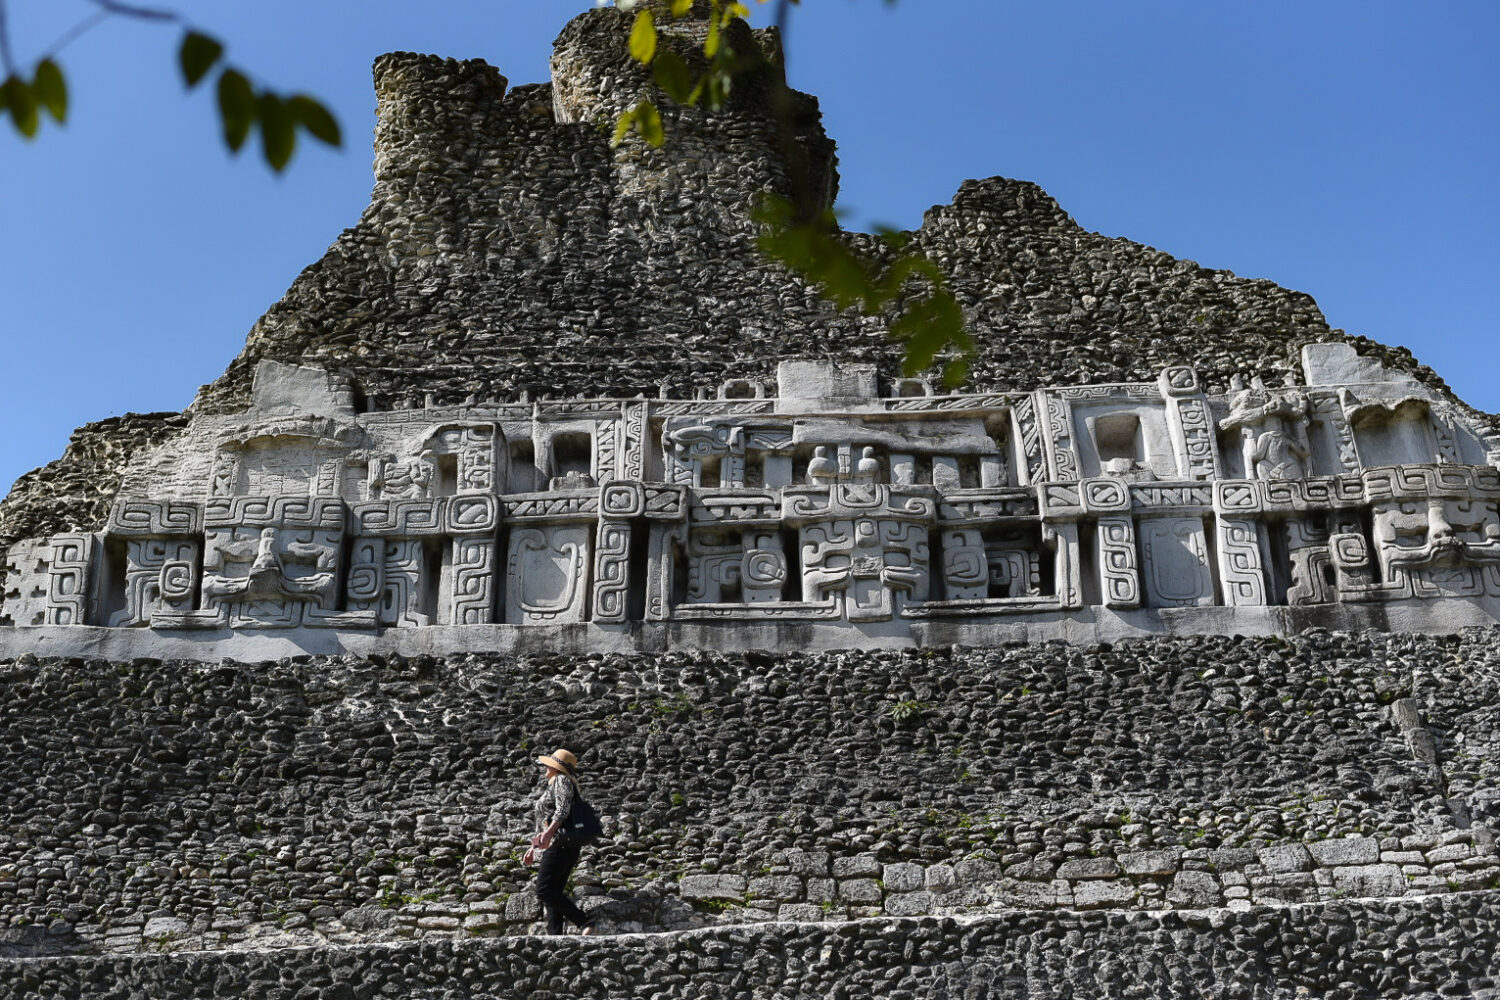 """A frieze replicated artifact depicting gods and monsters. At the foot of """"El Castillo,"""" name given to this mammoth of a structure, is where the ghost of the stone maiden, Xunantunich, was encountered by nearby villagers in early 1800."""